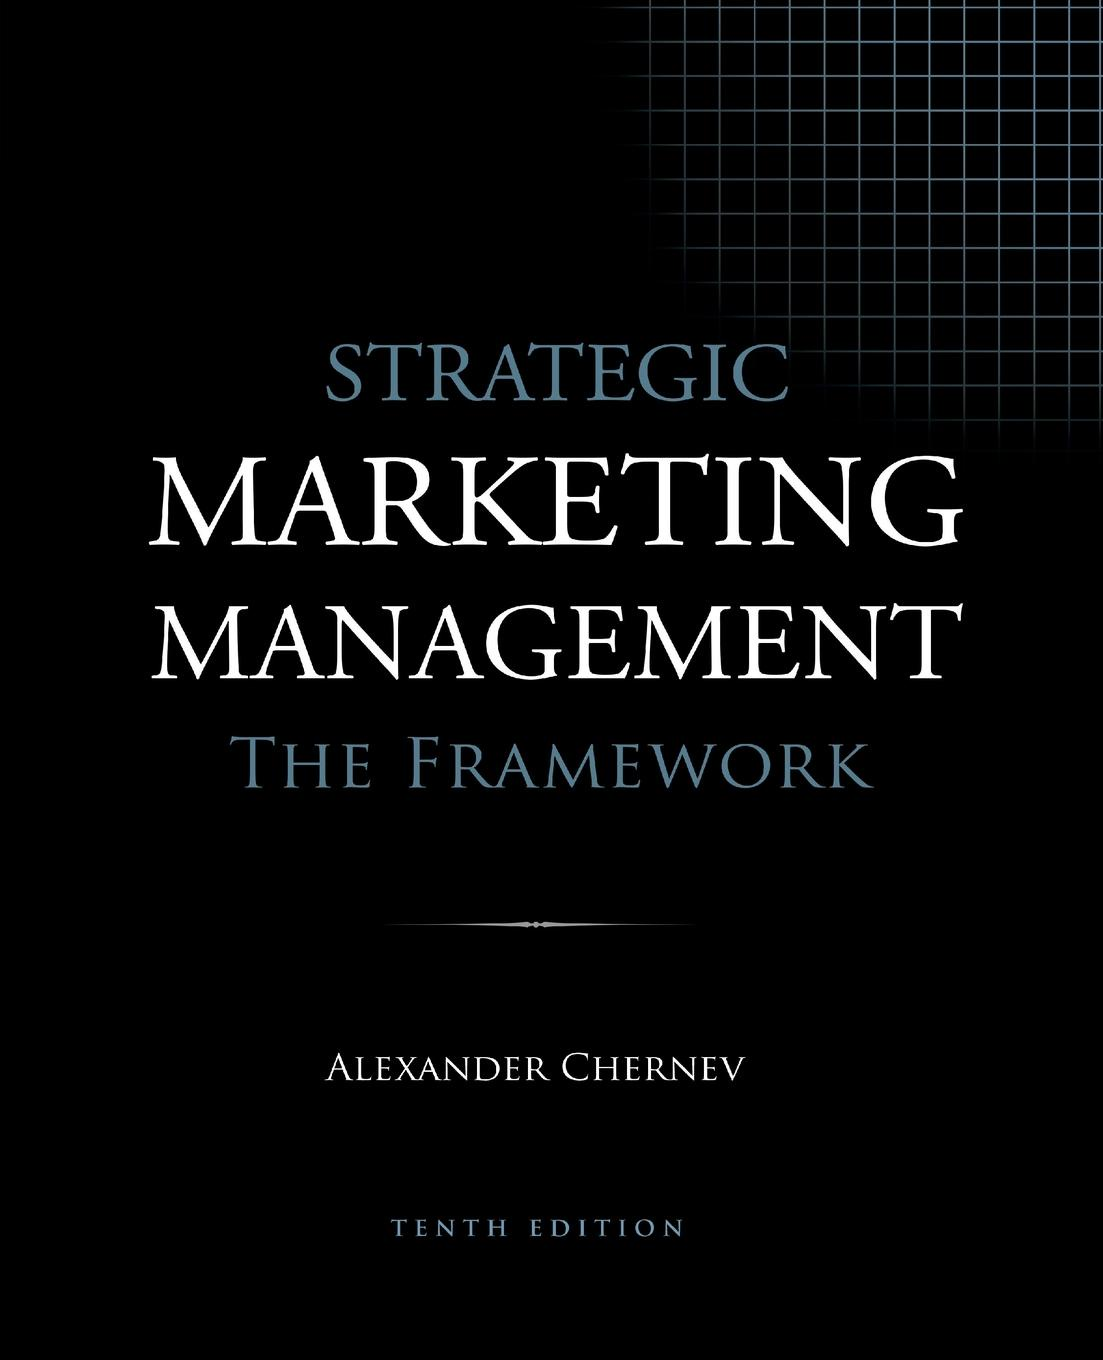 Alexander Chernev Strategic Marketing Management - The Framework, 10th Edition christopher culp l the risk management process business strategy and tactics